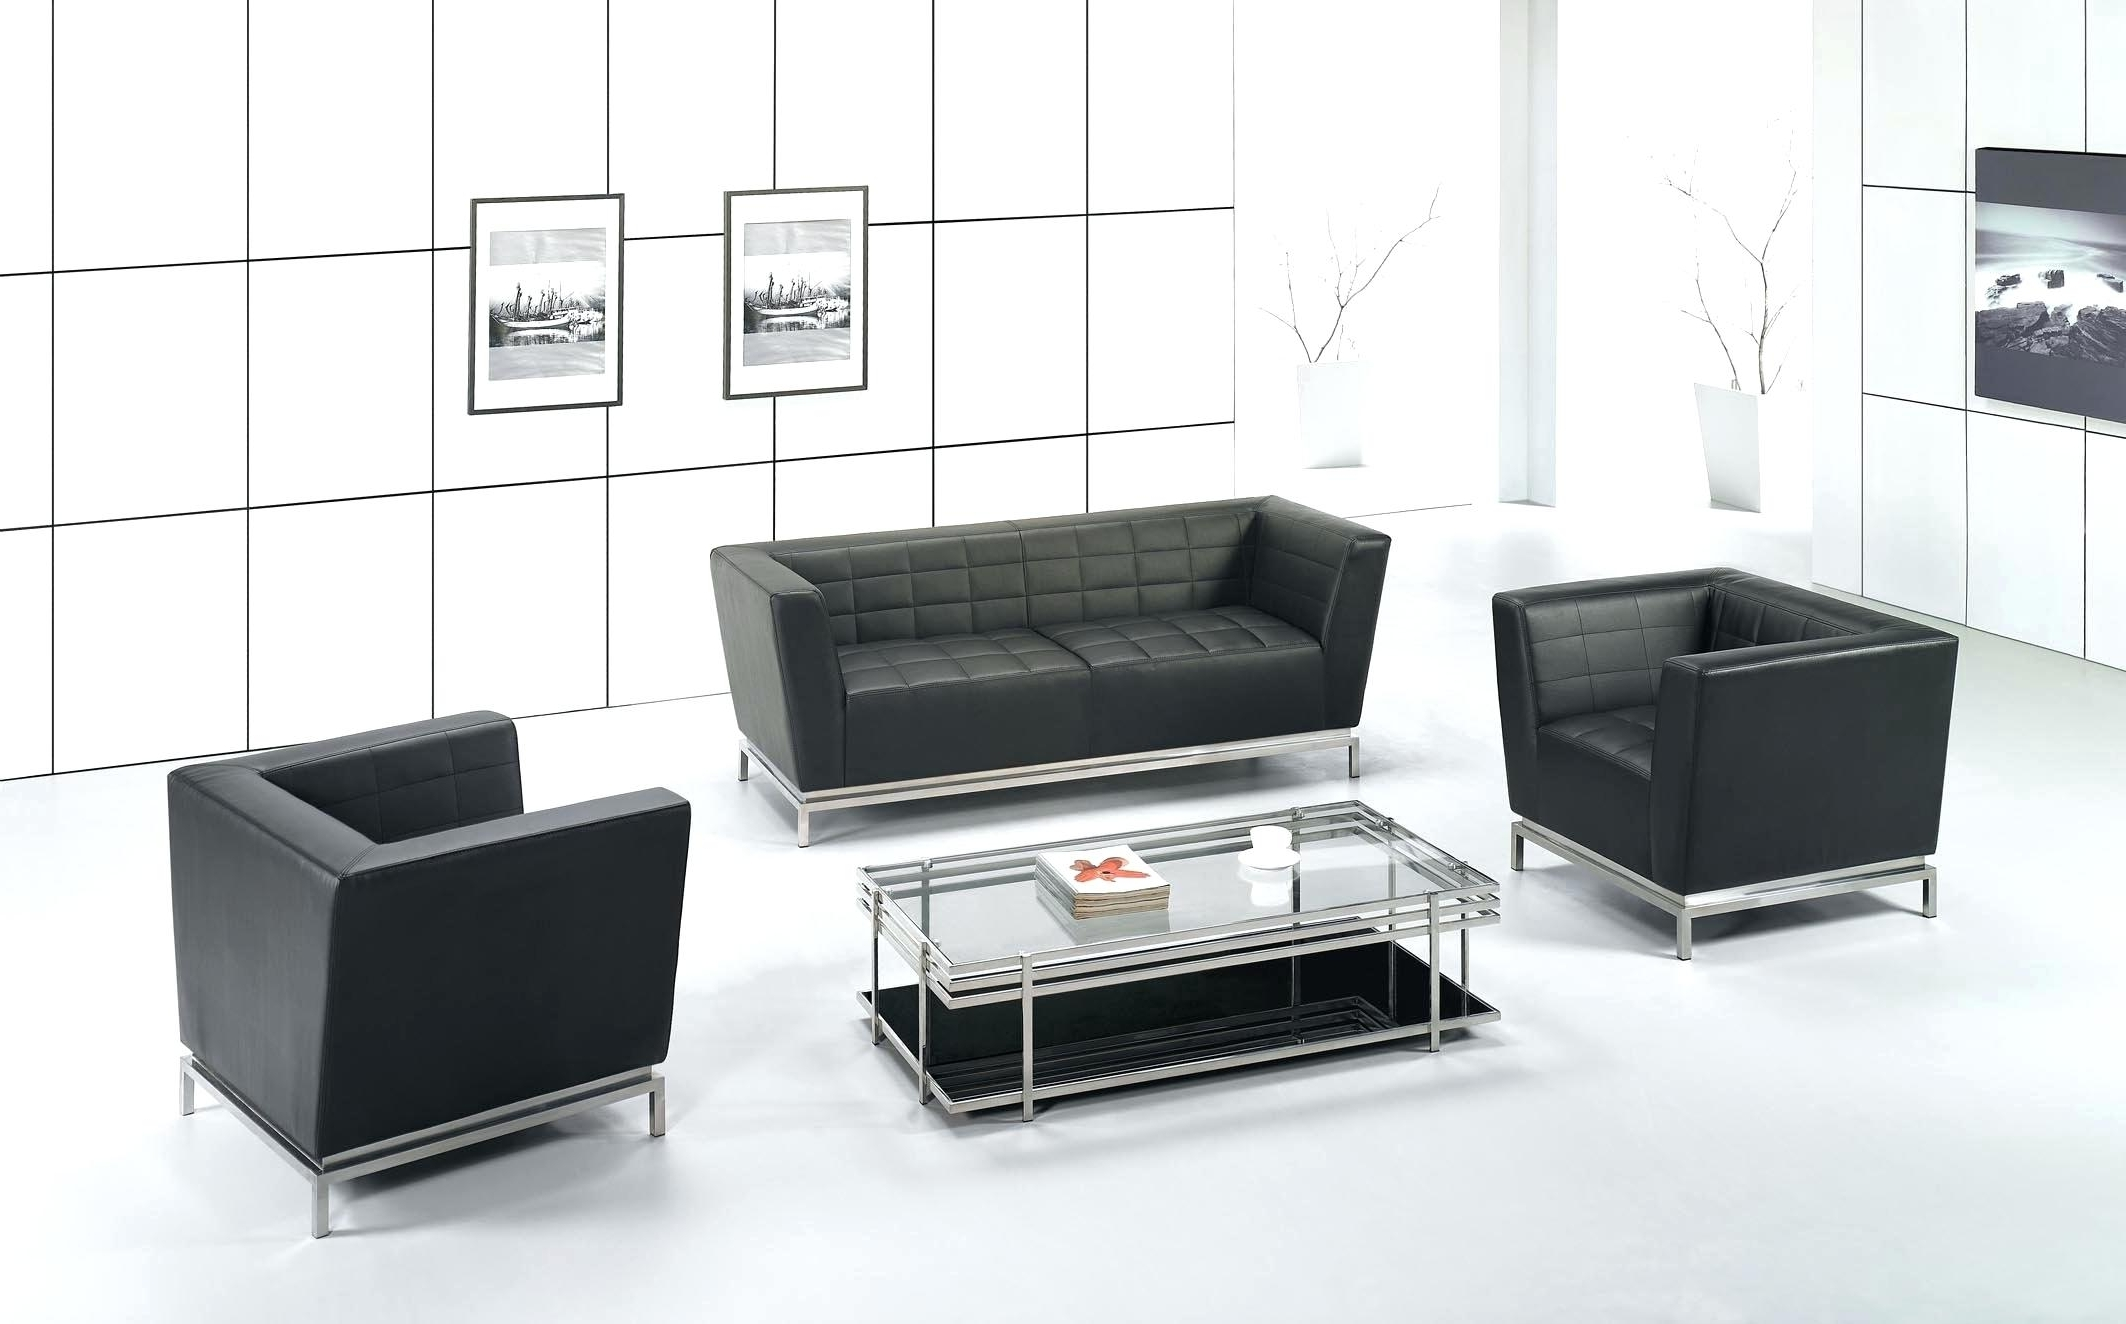 2017 Office Sofas Throughout Decoration: Space Saving Guest Beds Modern Office Sofas Best Of (View 14 of 15)